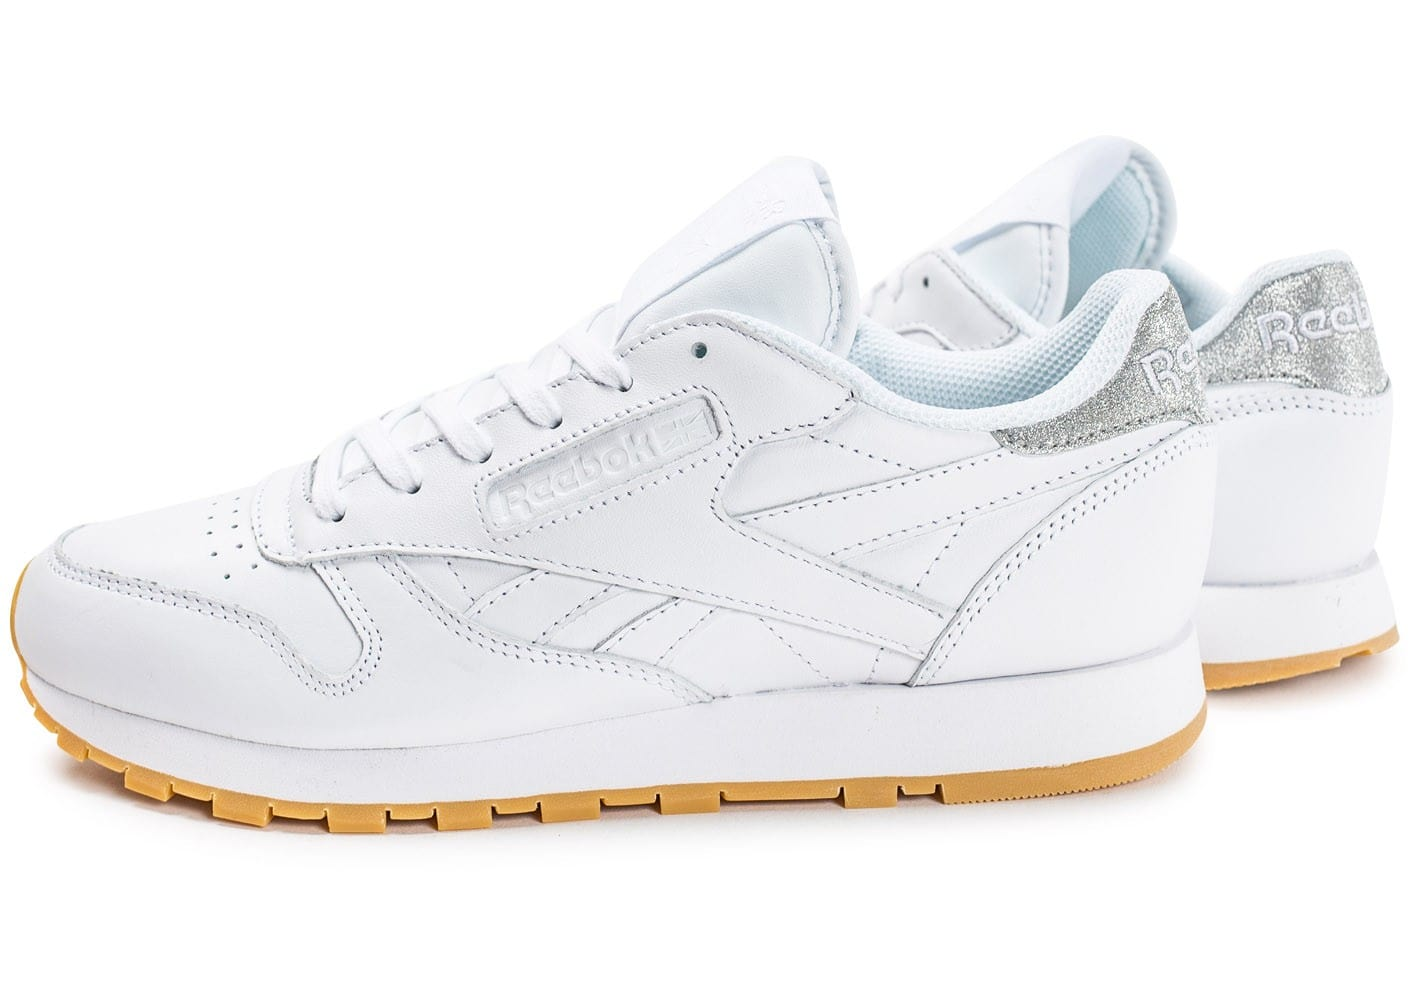 Chaussures Reebok Classic Leather blanches femme WmcDBN